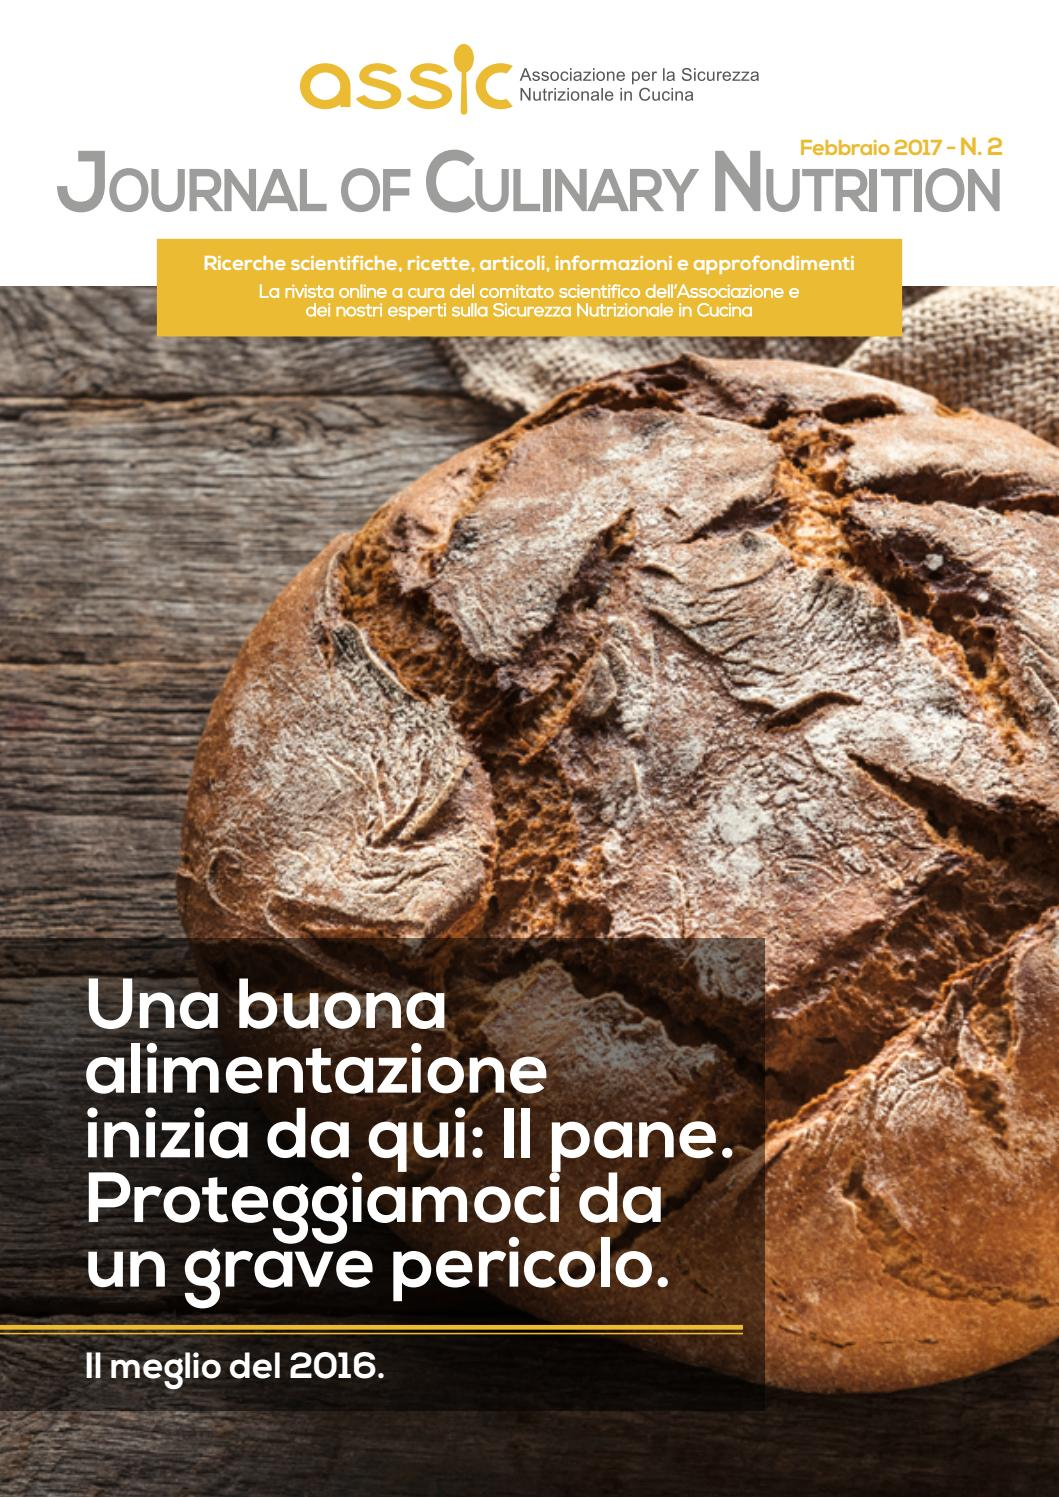 Cucina Evolution Chiara Manzi Ricette Journal Of Culinary Nutrition Febbraio 2017 By